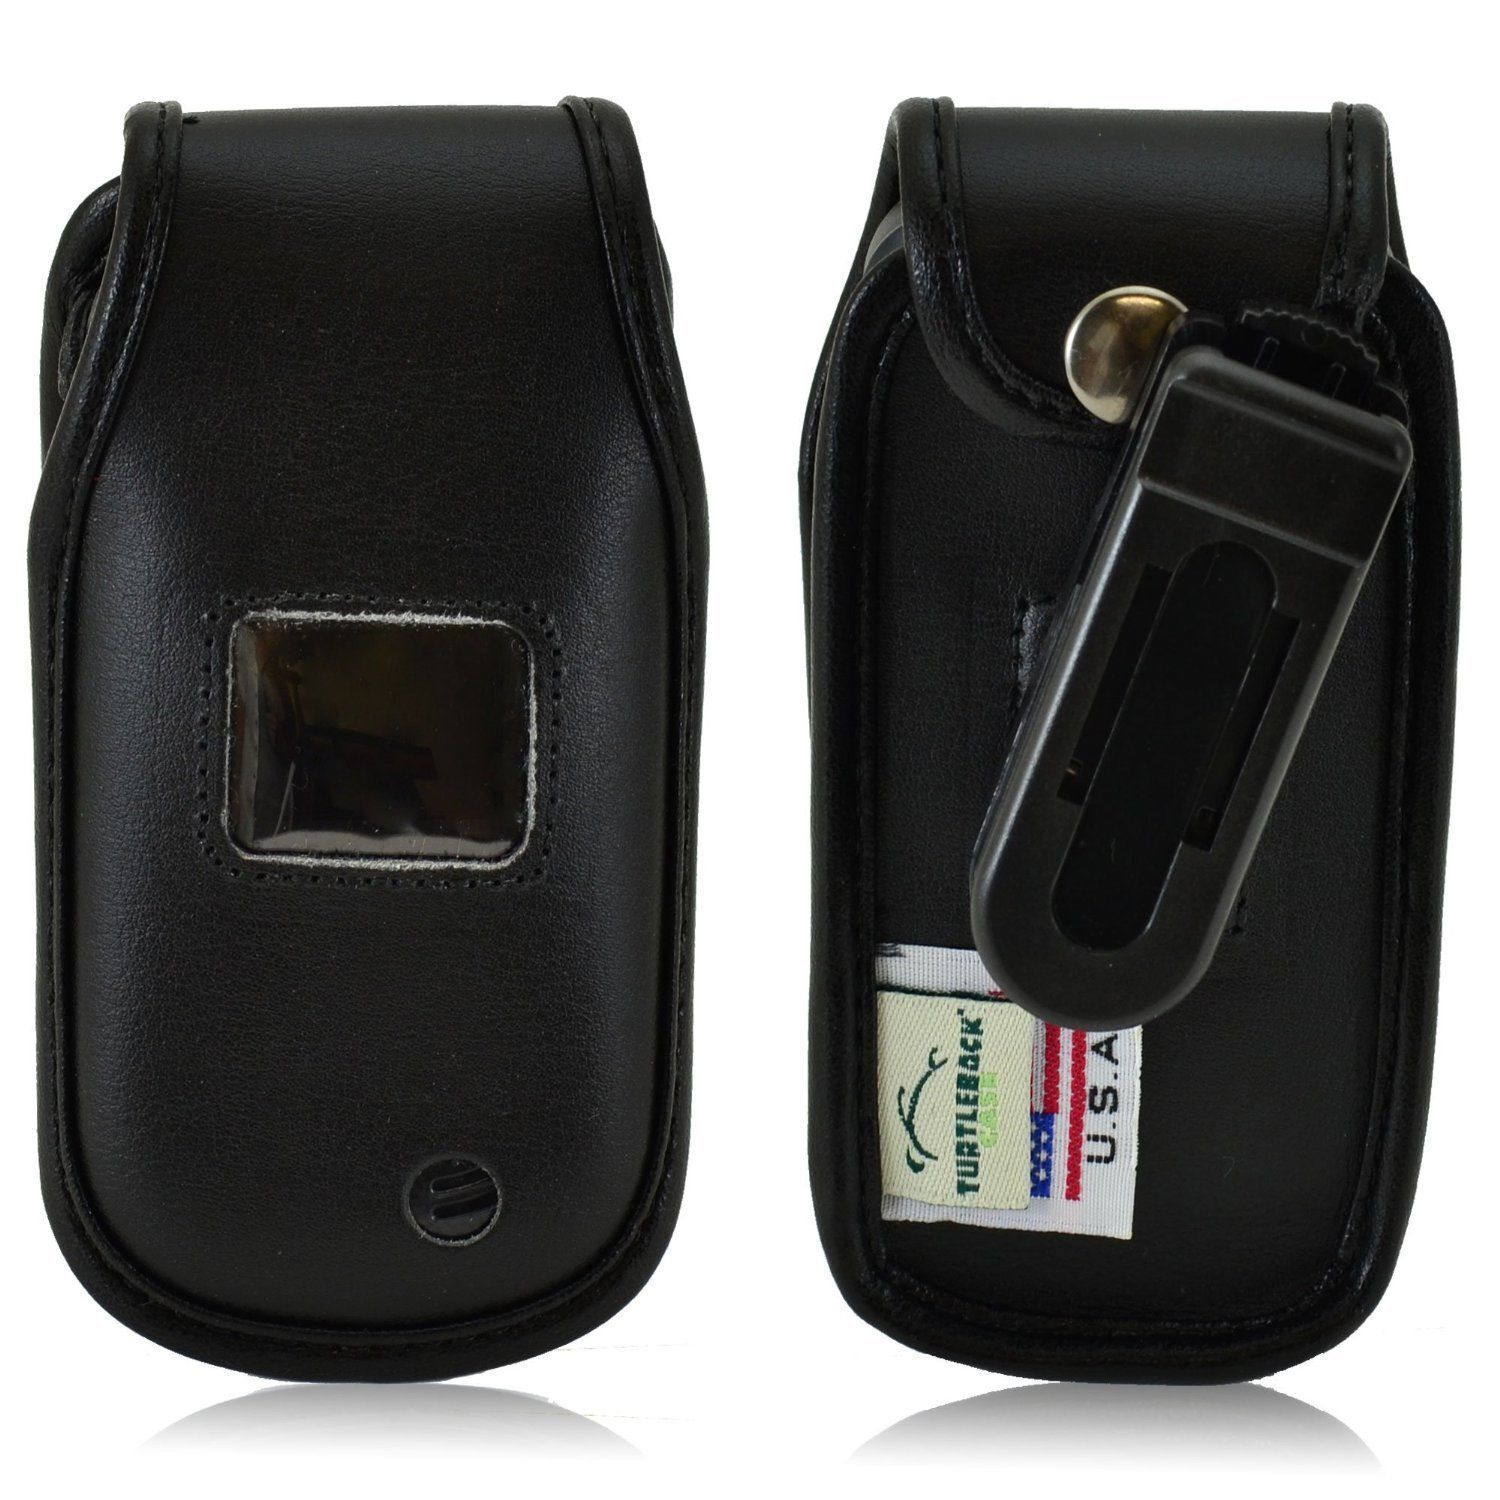 turtleback-lg-envoy-3-iii-un170-leather-fitted-phone-case-ratcheting-belt-clip